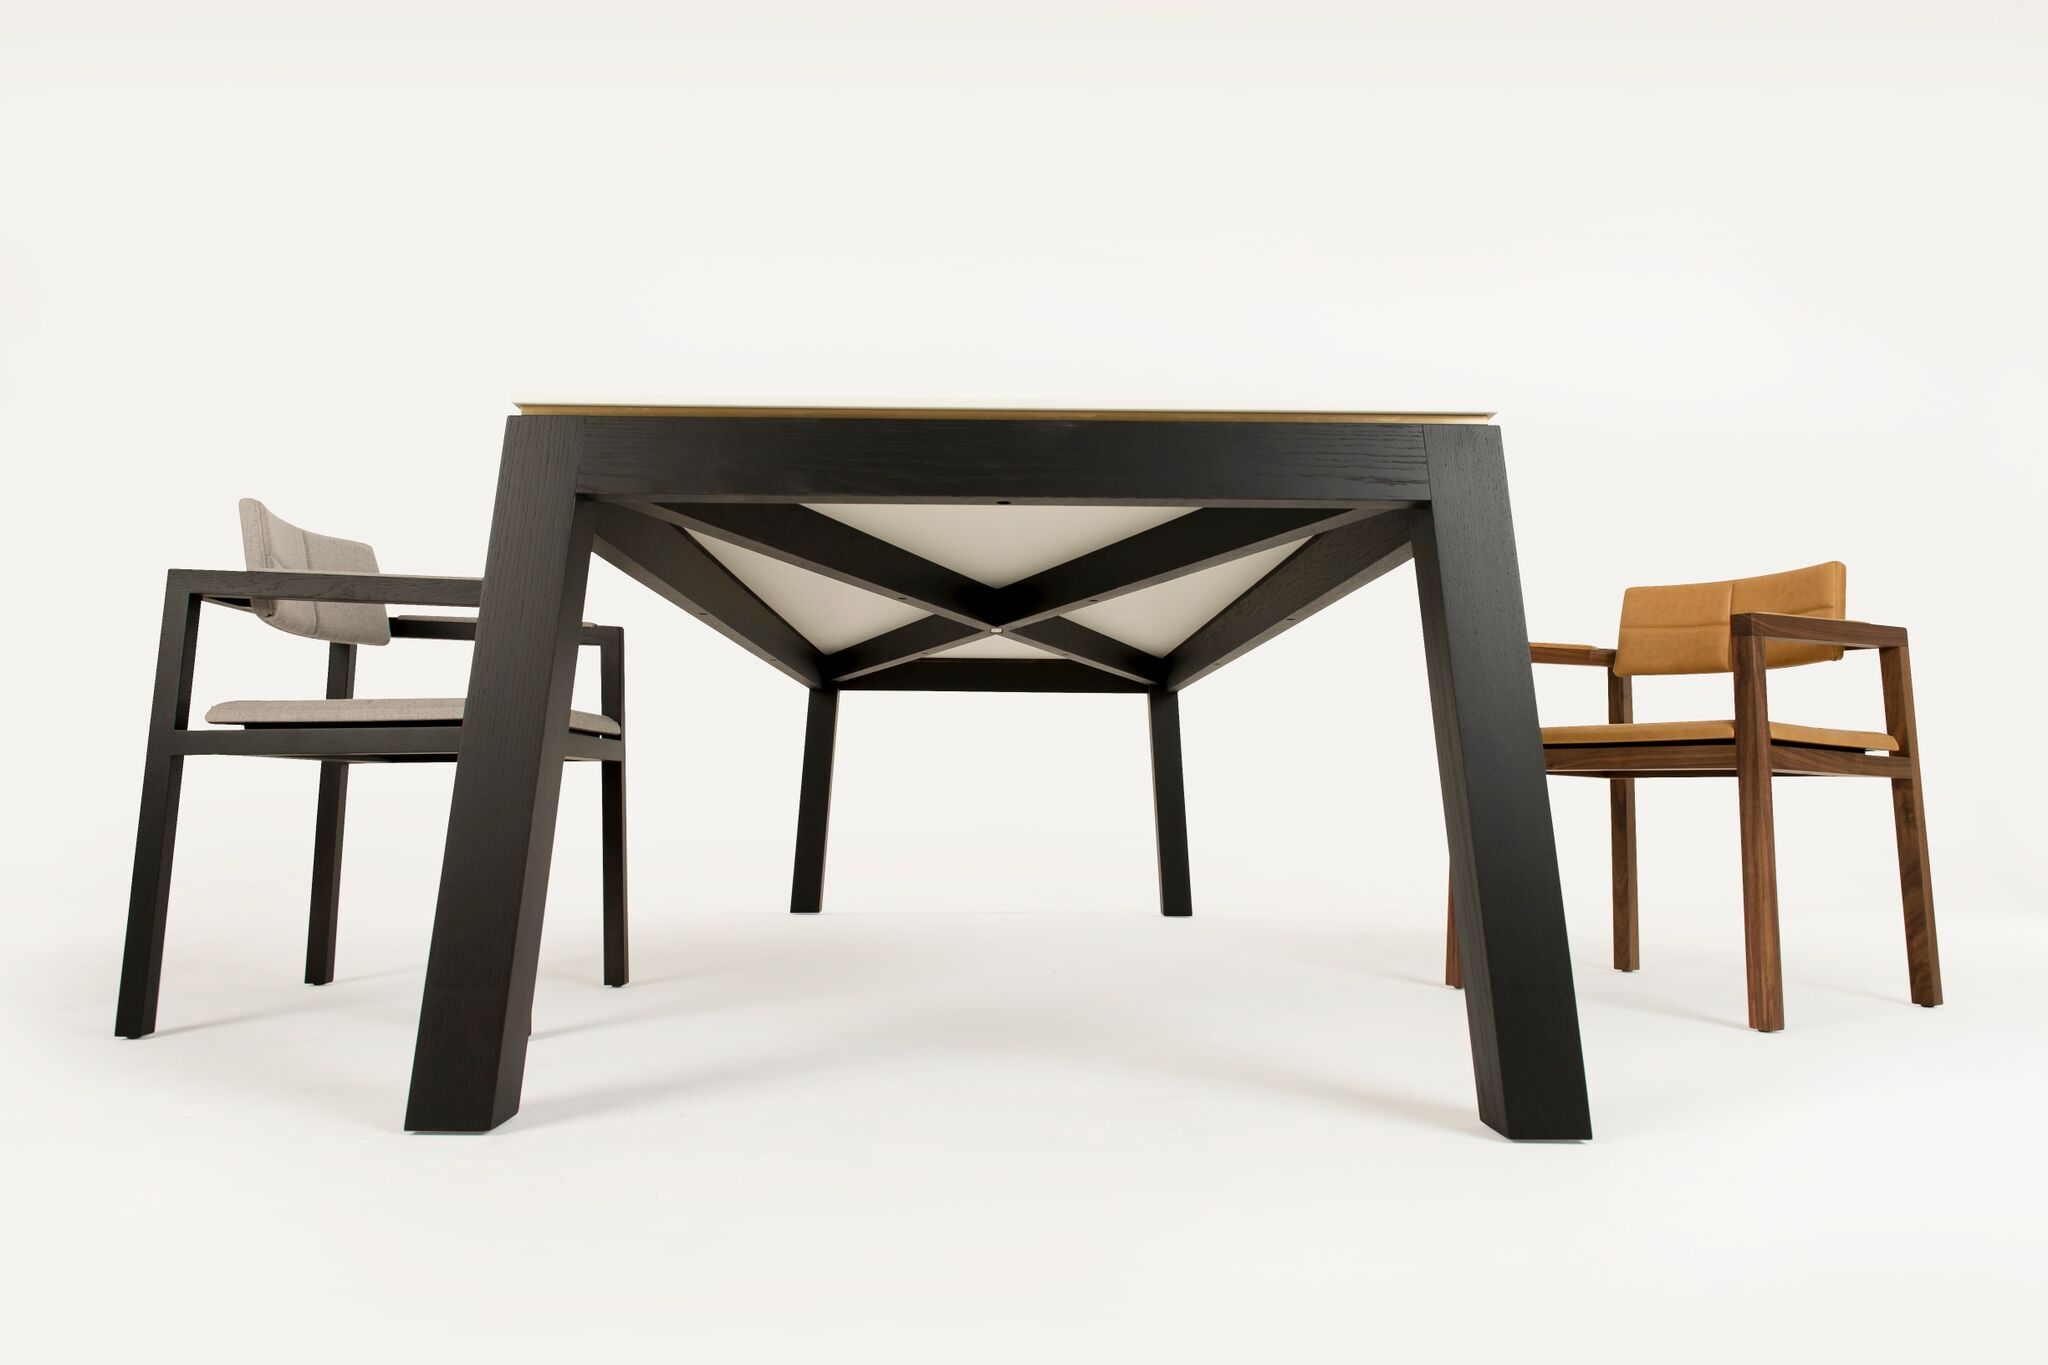 Gallery Of The Mila Table By Fraco Crea Local Australian Furniture Design Melbourne, Vic Image 6